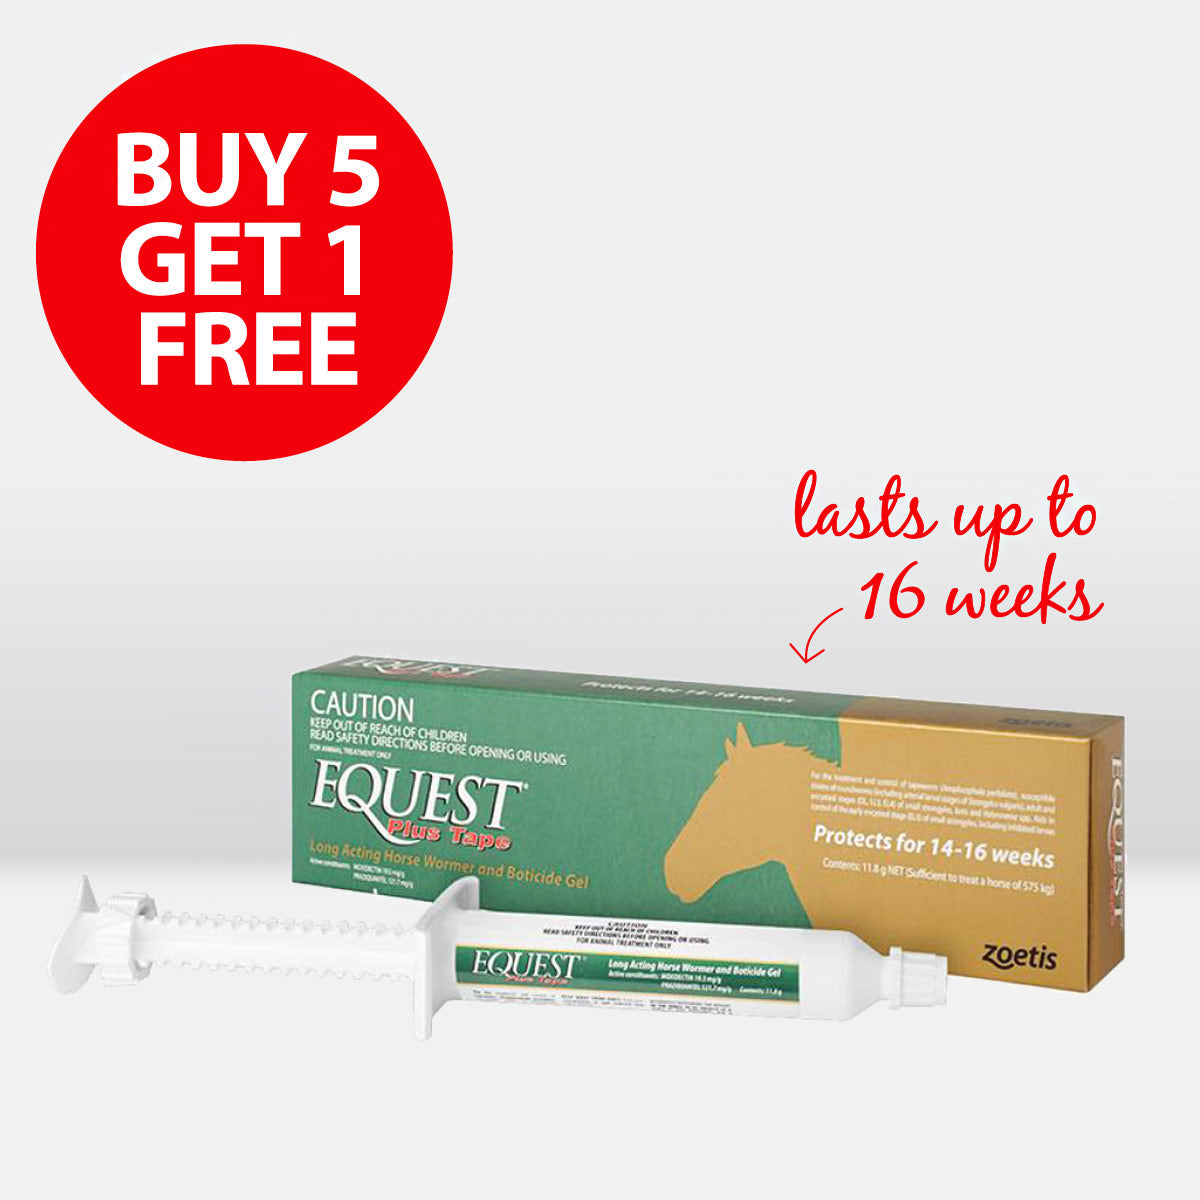 Equest Buy 5 GET 1 FREE